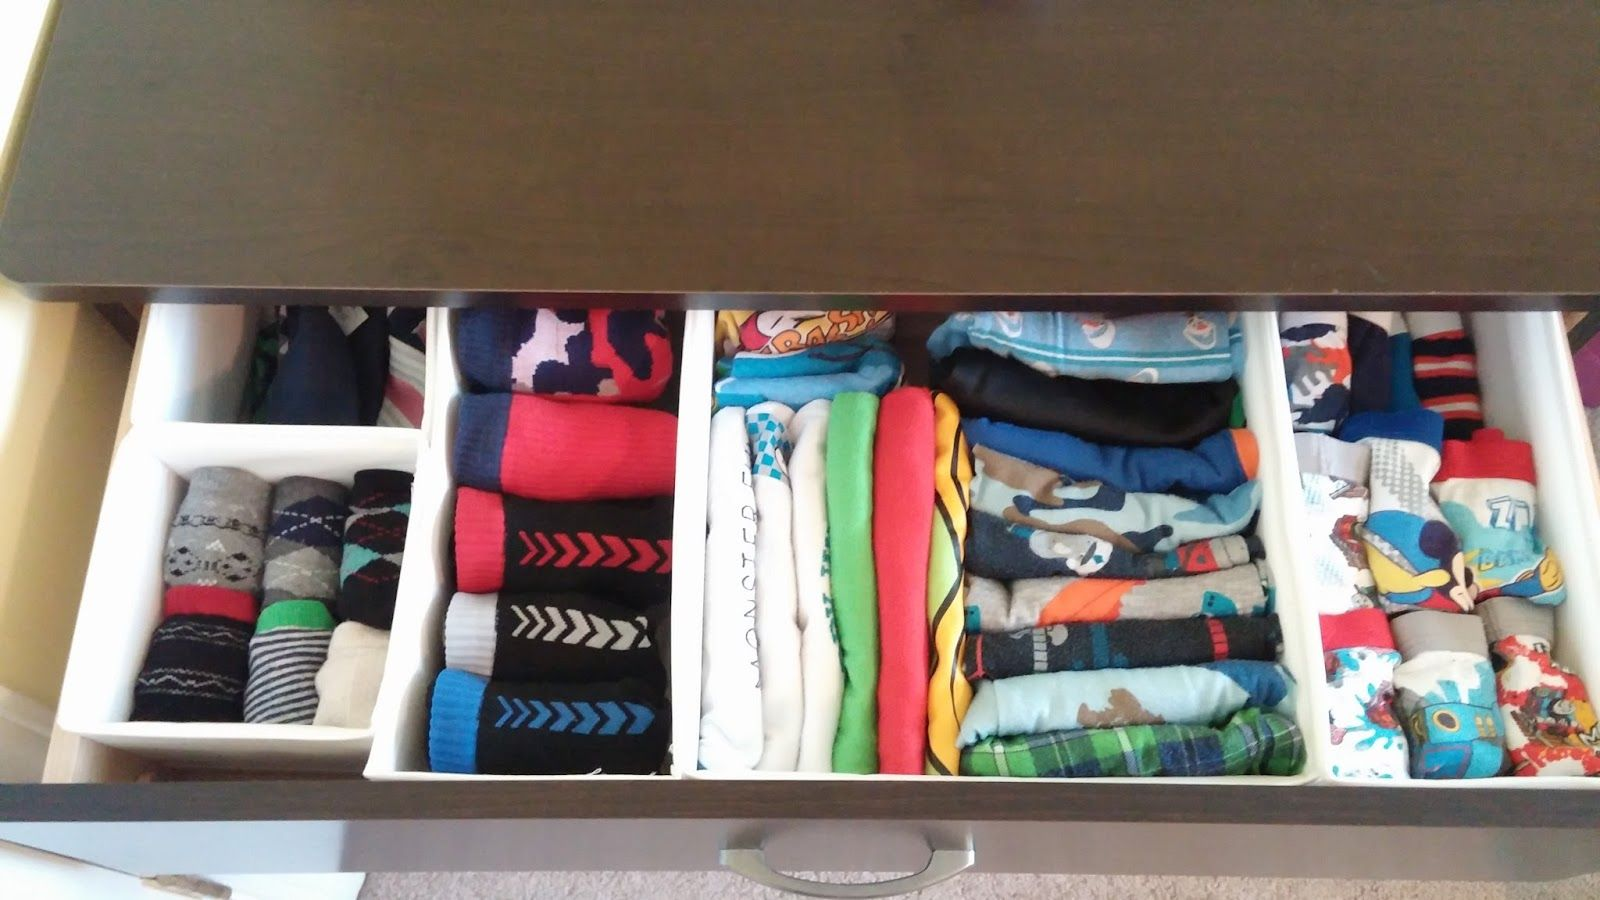 Organizing Kids Clothes In Drawers Kids Clothes Organization Organization Kids Wardrobe Organisation